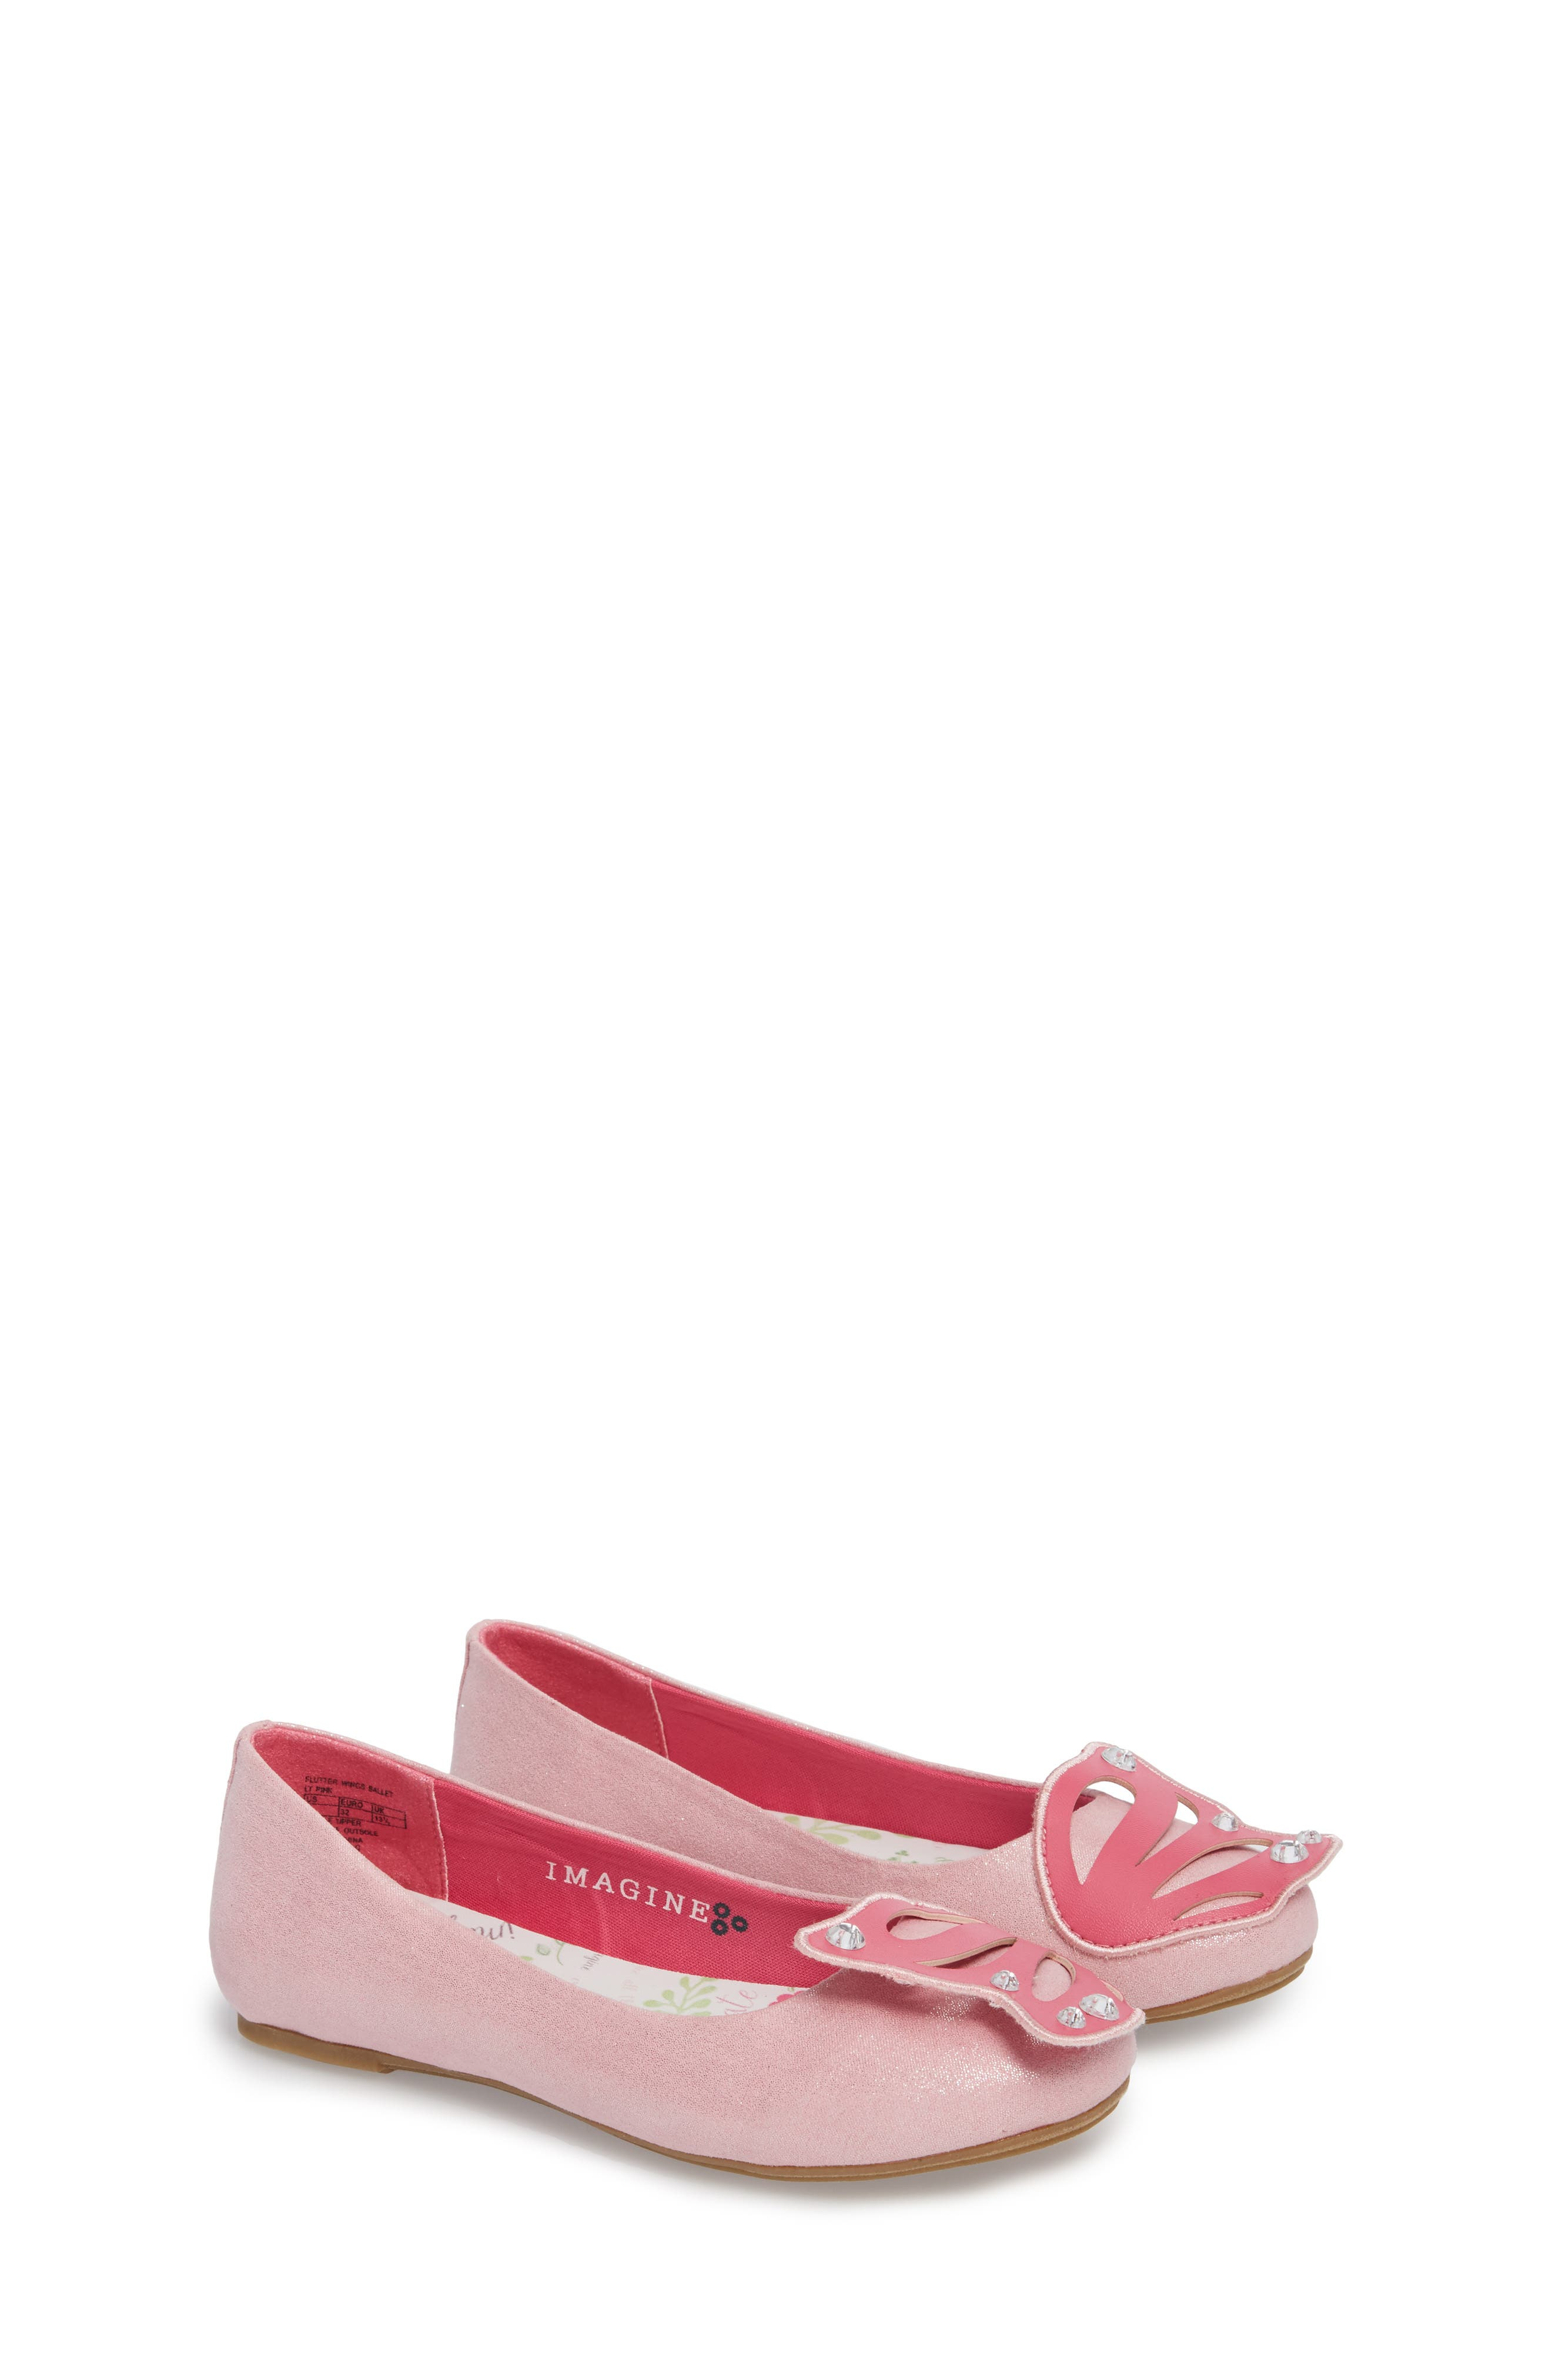 Main Image - WellieWishers by American Girl Flutter Wings Embellished Ballet Flat (Toddler, Little Kid & Big Kid)